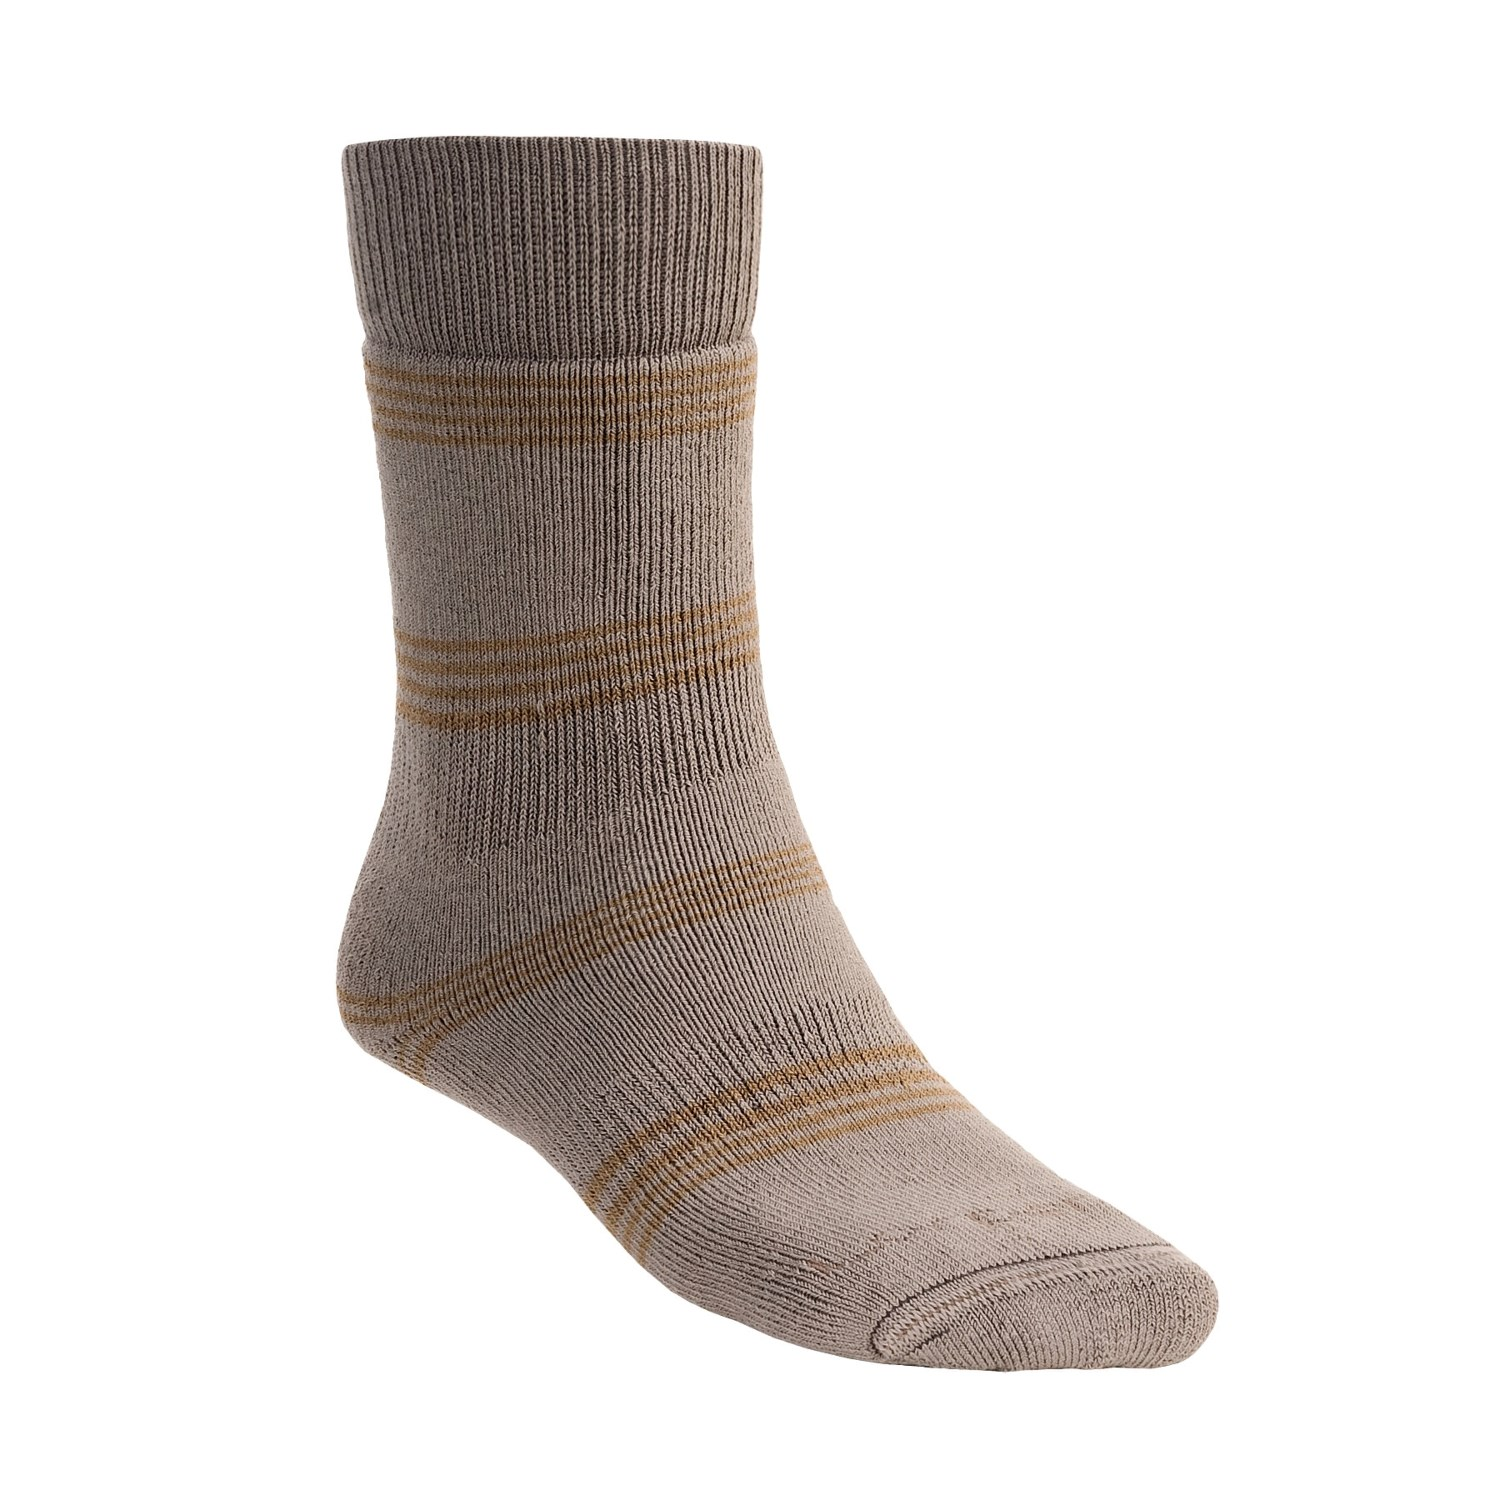 Free shipping BOTH ways on Socks, Men, Modal, from our vast selection of styles. Fast delivery, and 24/7/ real-person service with a smile. Click or call